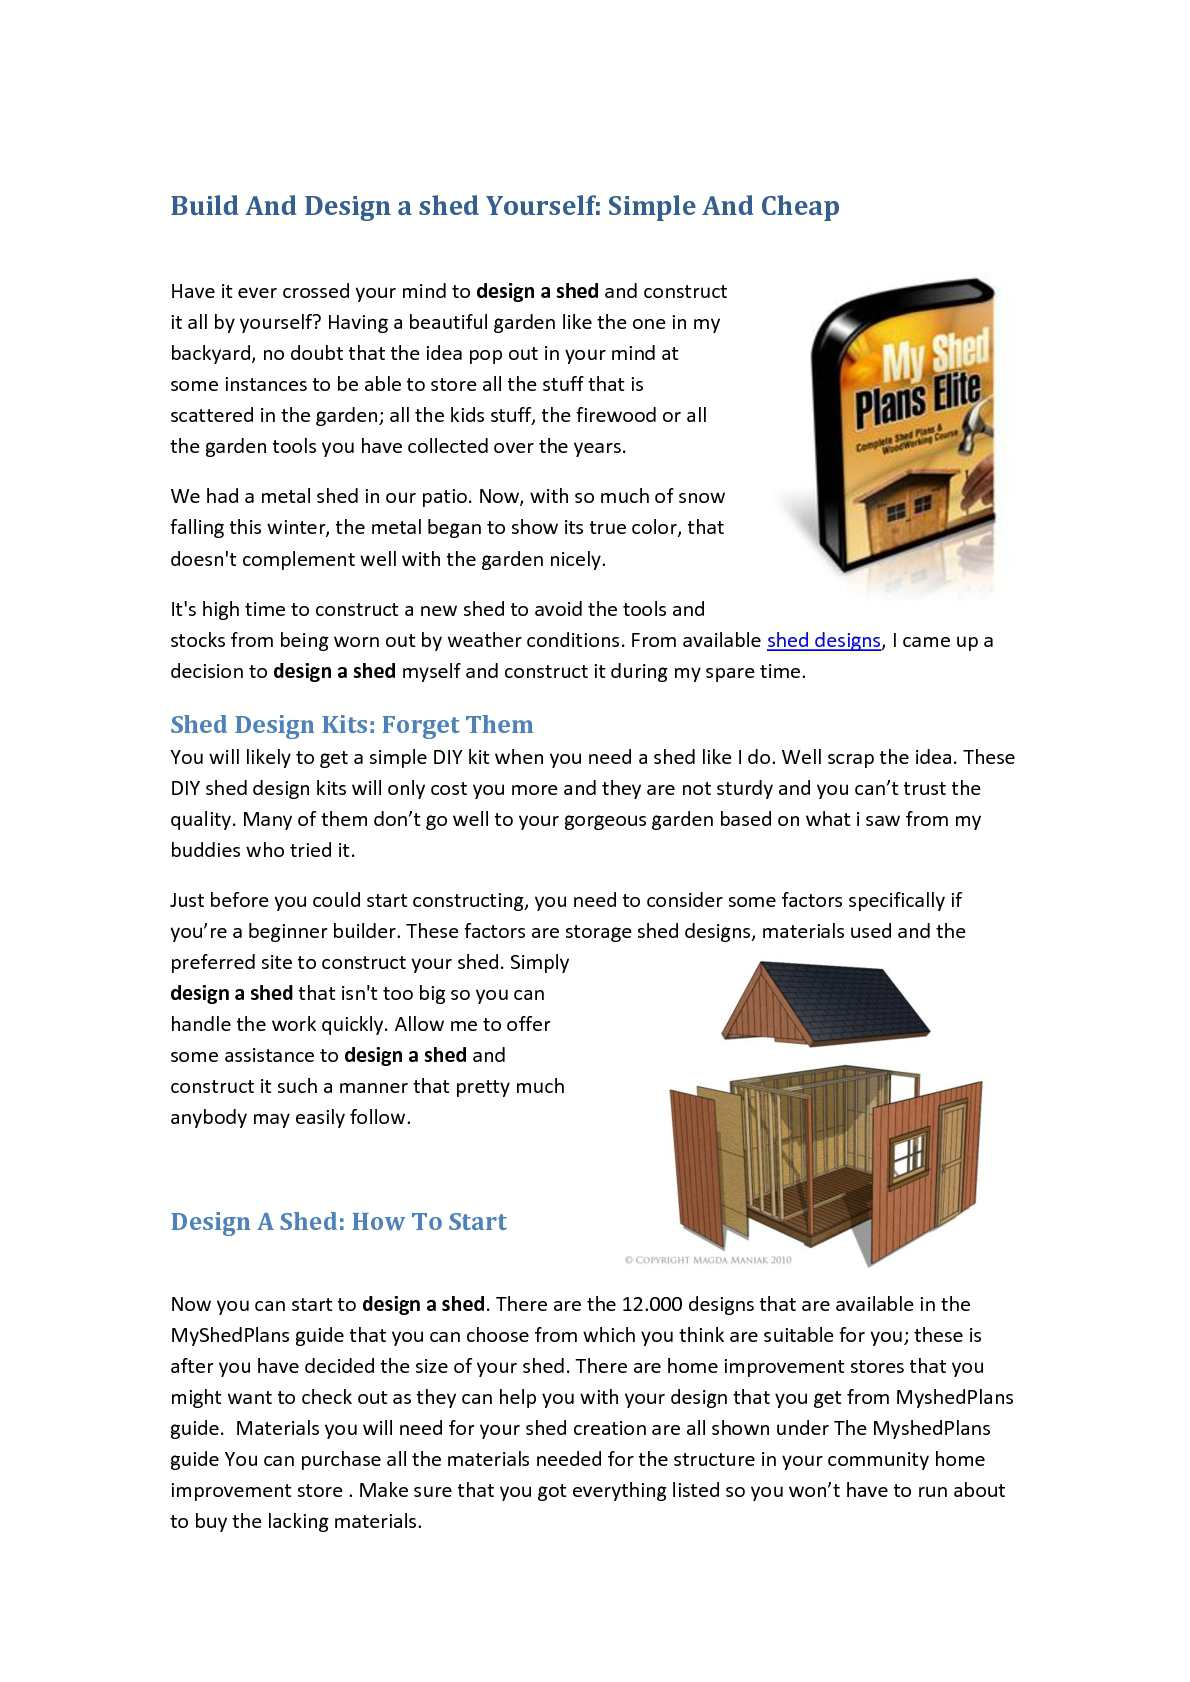 Calameo How To Design A Shed Inexpensive And Build It Yourself